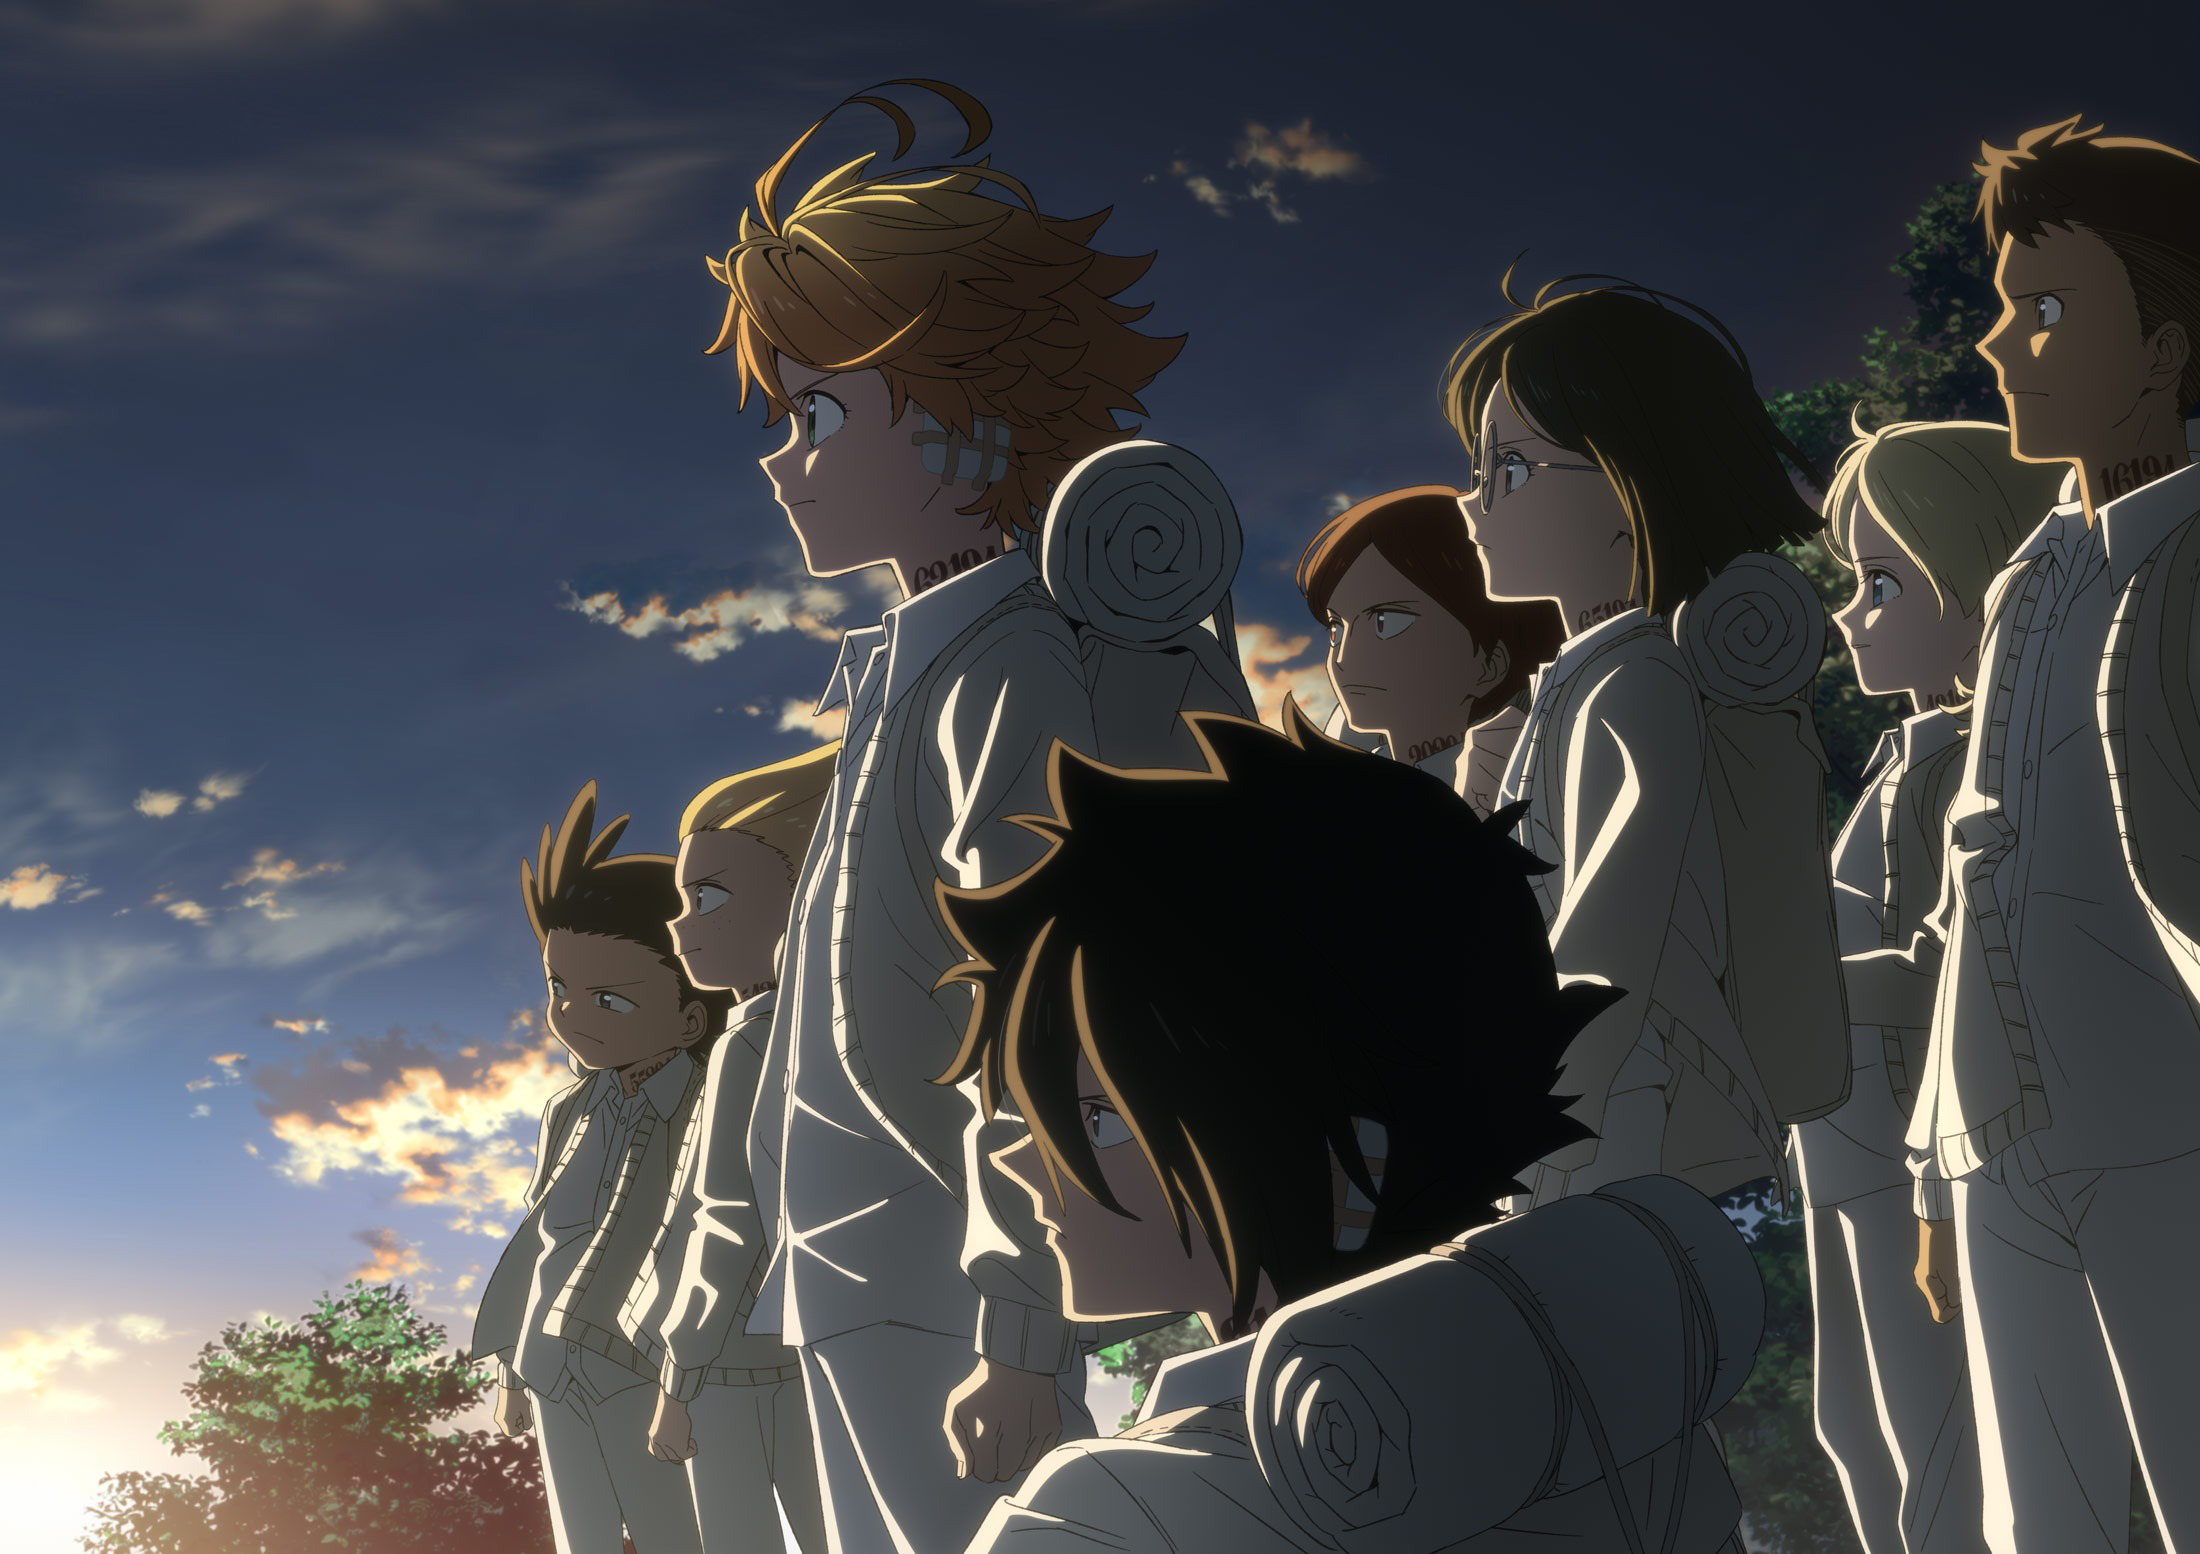 https://vignette.wikia.nocookie.net/yakusokunoneverland/images/2/22/TPN_Season_2.png/revision/latest?cb=20191225152231